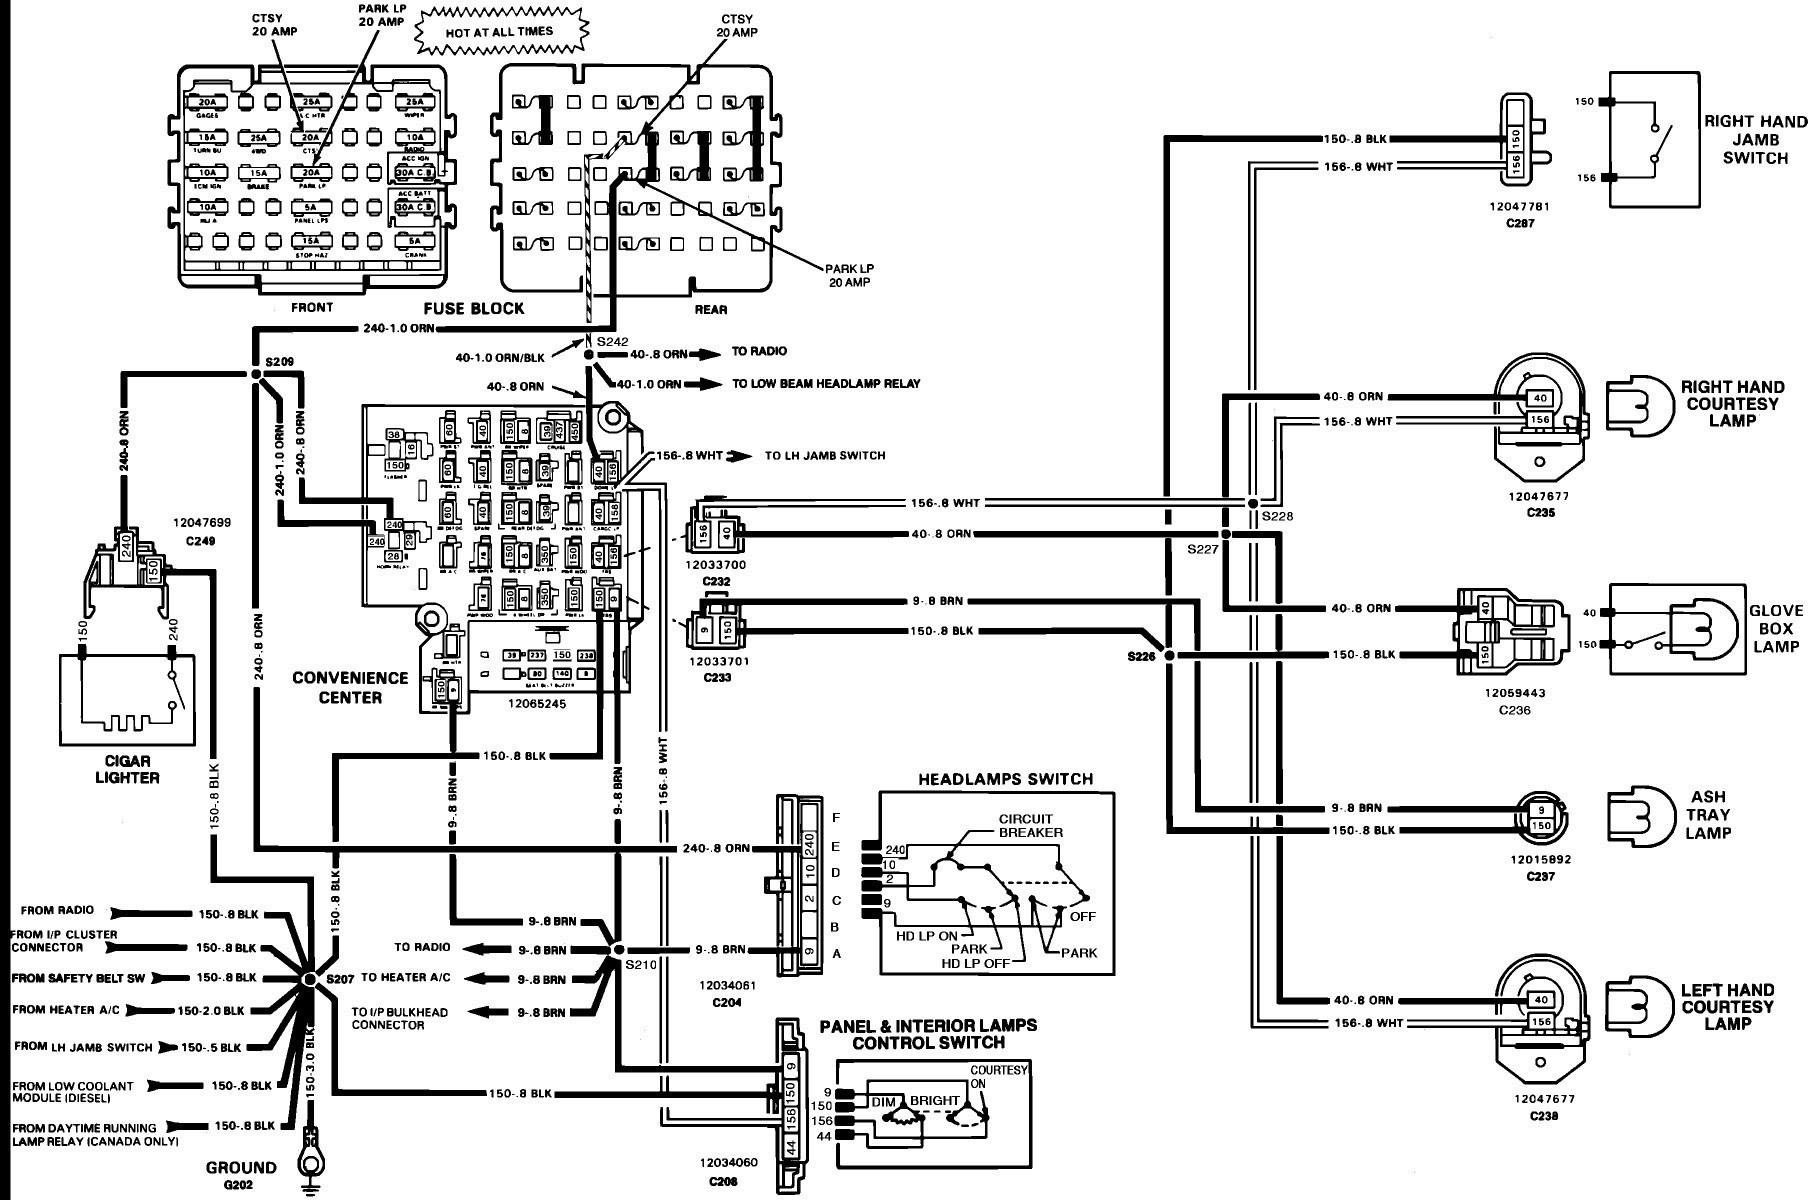 Chevy S10 Tail Light Wiring Diagram 95 S10 Lights Wiring Of Chevy S10 Tail Light Wiring Diagram